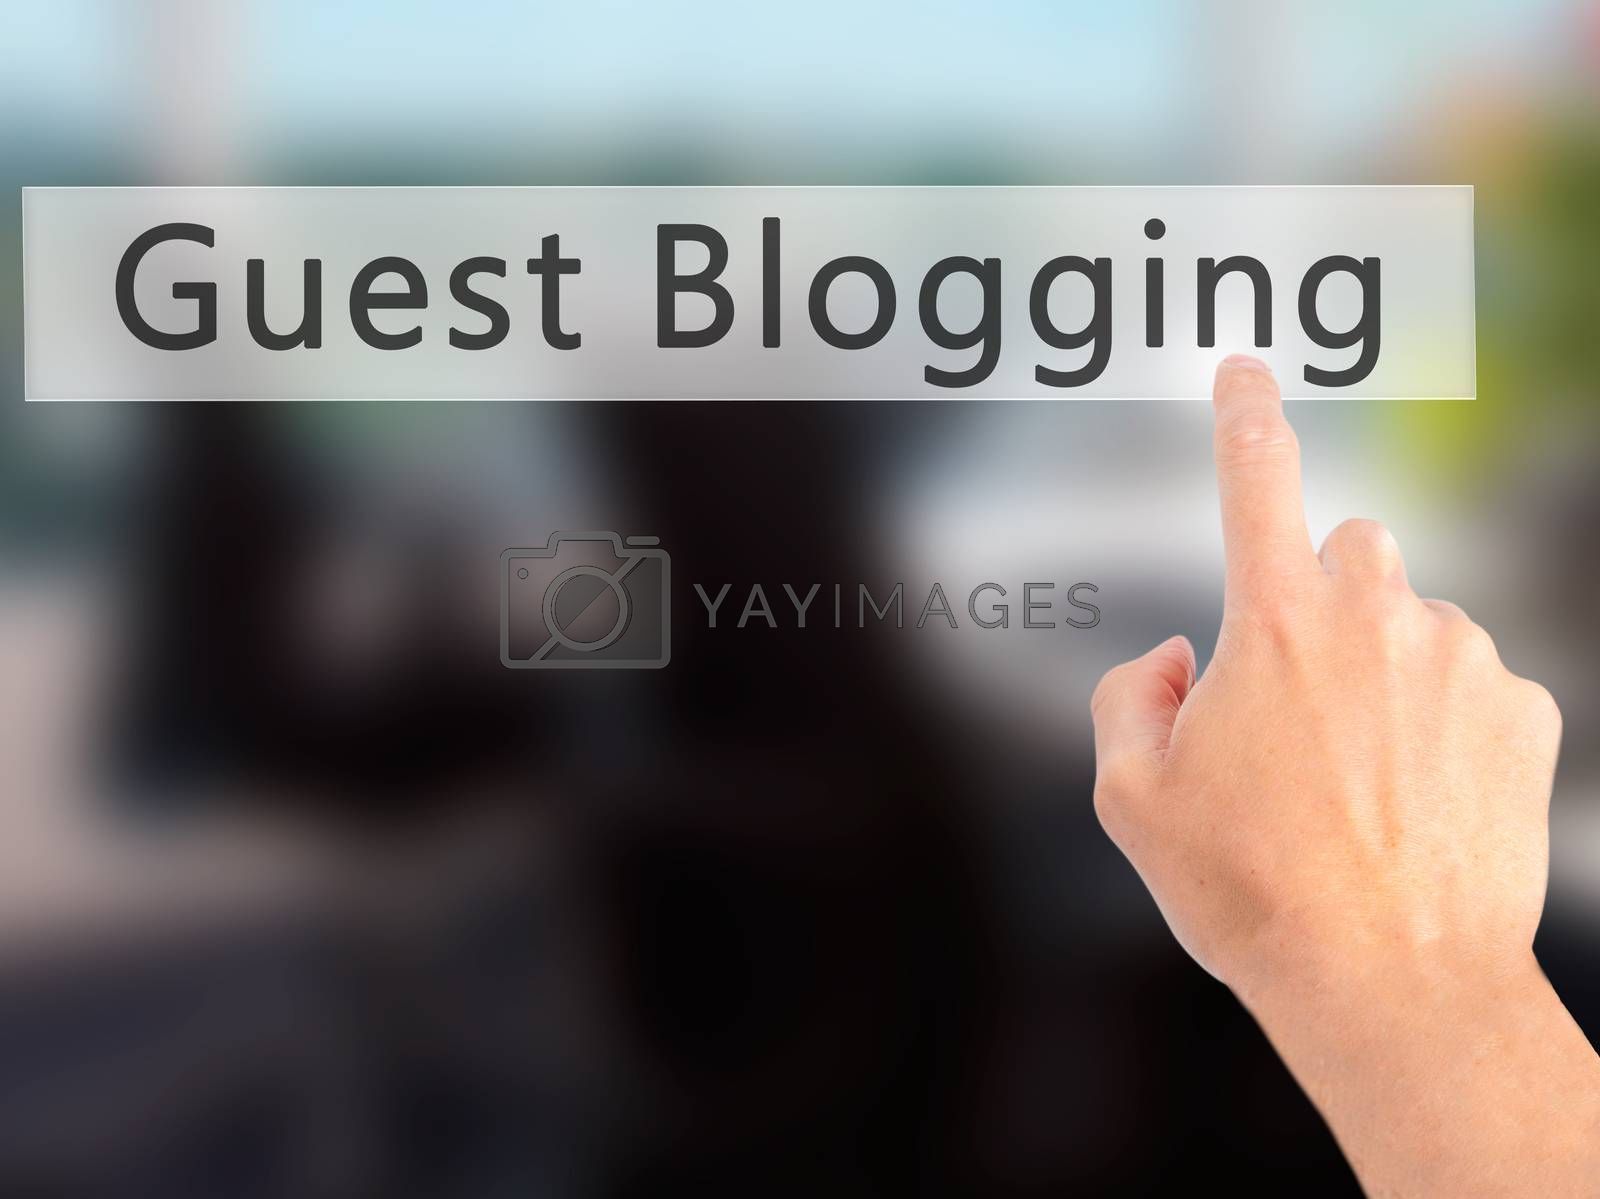 Guest Blogging - Hand pressing a button on blurred background co by jackald